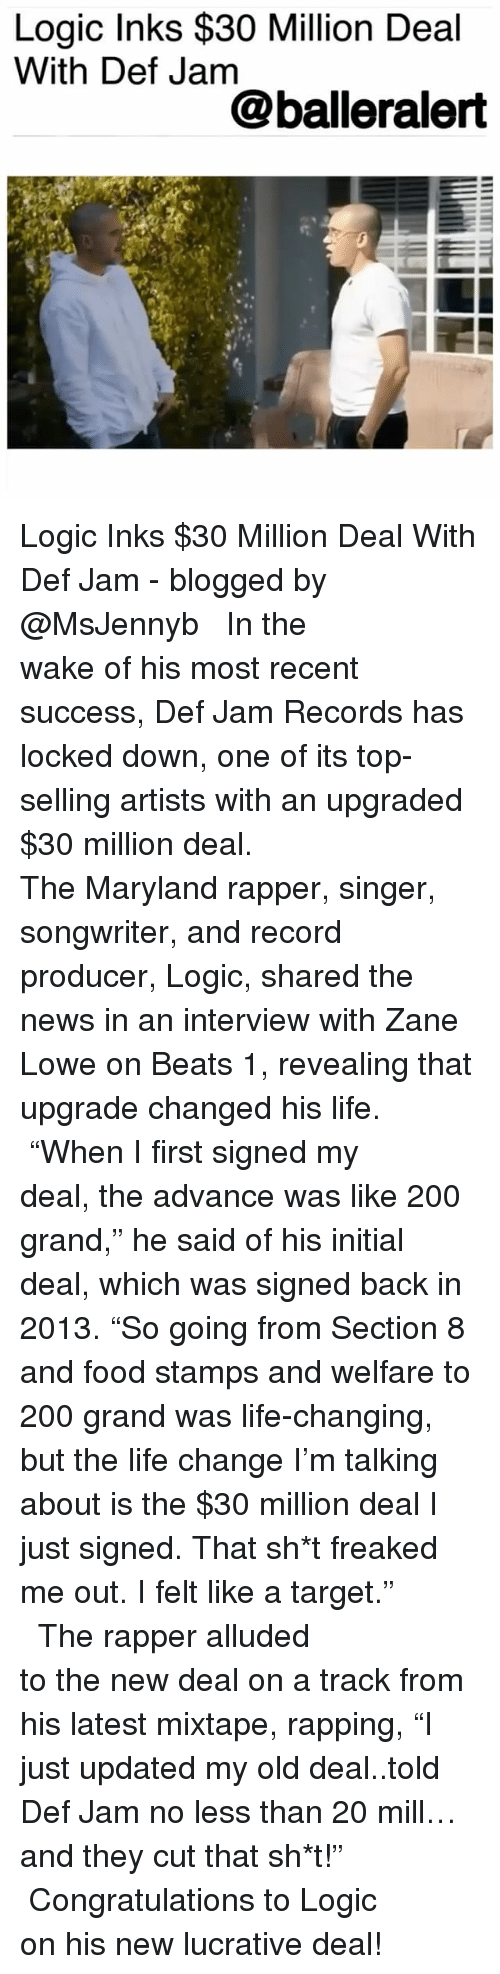 """Life Change: Logic Inks $30 Million Deal  With Def Jam  @balleralert Logic Inks $30 Million Deal With Def Jam - blogged by @MsJennyb ⠀⠀⠀⠀⠀⠀⠀⠀⠀ ⠀⠀⠀⠀⠀⠀⠀⠀⠀ In the wake of his most recent success, Def Jam Records has locked down, one of its top-selling artists with an upgraded $30 million deal. ⠀⠀⠀⠀⠀⠀⠀⠀⠀ ⠀⠀⠀⠀⠀⠀⠀⠀⠀ The Maryland rapper, singer, songwriter, and record producer, Logic, shared the news in an interview with Zane Lowe on Beats 1, revealing that upgrade changed his life. ⠀⠀⠀⠀⠀⠀⠀⠀⠀ ⠀⠀⠀⠀⠀⠀⠀⠀⠀ """"When I first signed my deal, the advance was like 200 grand,"""" he said of his initial deal, which was signed back in 2013. """"So going from Section 8 and food stamps and welfare to 200 grand was life-changing, but the life change I'm talking about is the $30 million deal I just signed. That sh*t freaked me out. I felt like a target."""" ⠀⠀⠀⠀⠀⠀⠀⠀⠀ ⠀⠀⠀⠀⠀⠀⠀⠀⠀ The rapper alluded to the new deal on a track from his latest mixtape, rapping, """"I just updated my old deal..told Def Jam no less than 20 mill…and they cut that sh*t!"""" ⠀⠀⠀⠀⠀⠀⠀⠀⠀ ⠀⠀⠀⠀⠀⠀⠀⠀⠀ Congratulations to Logic on his new lucrative deal!"""